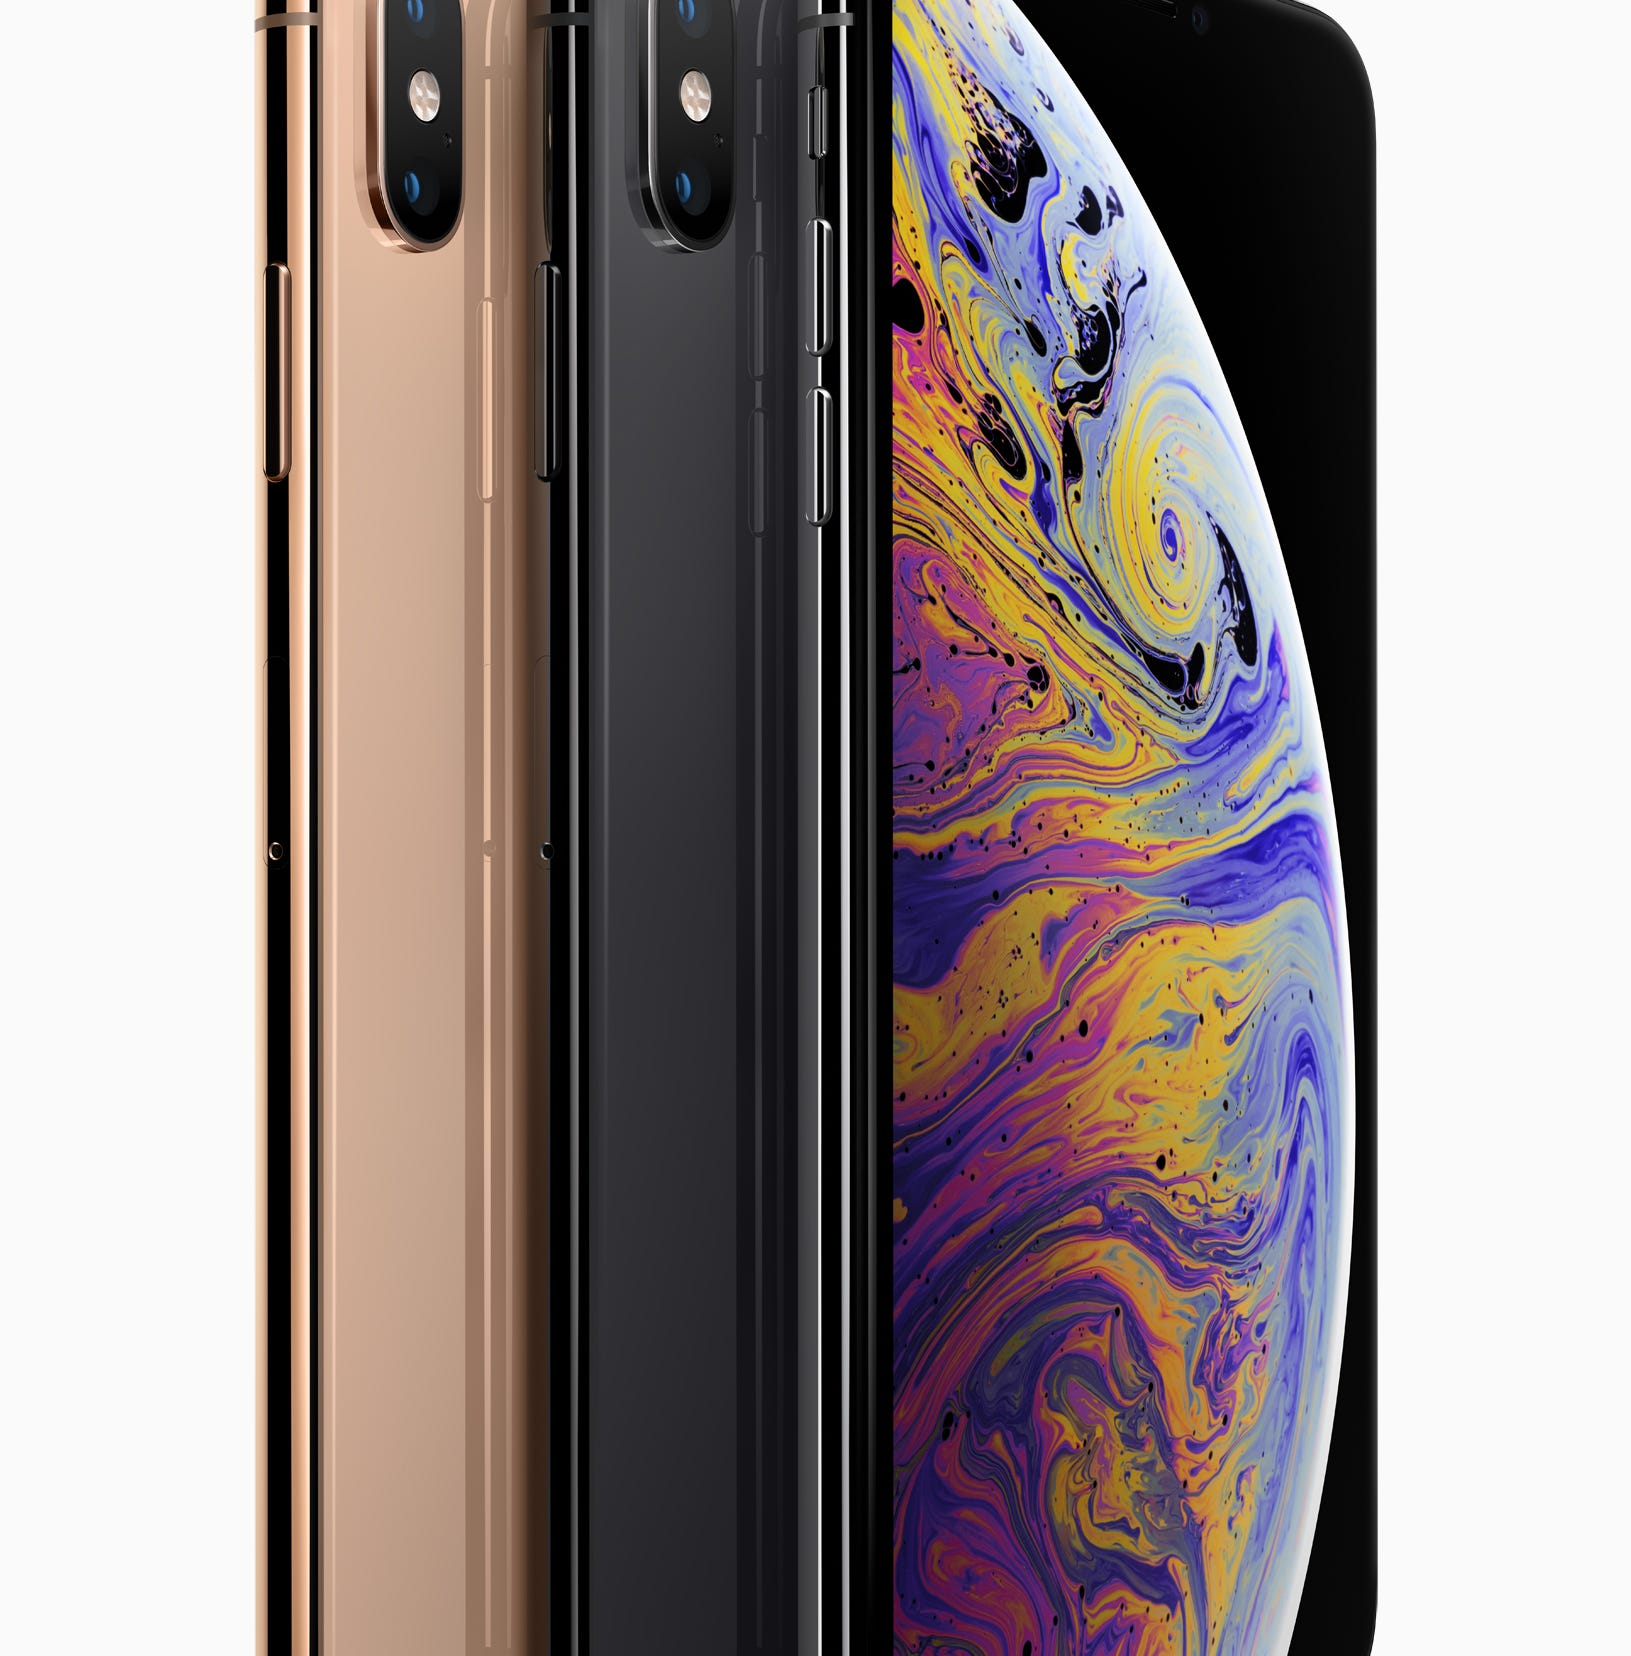 The iPhone XS lineup